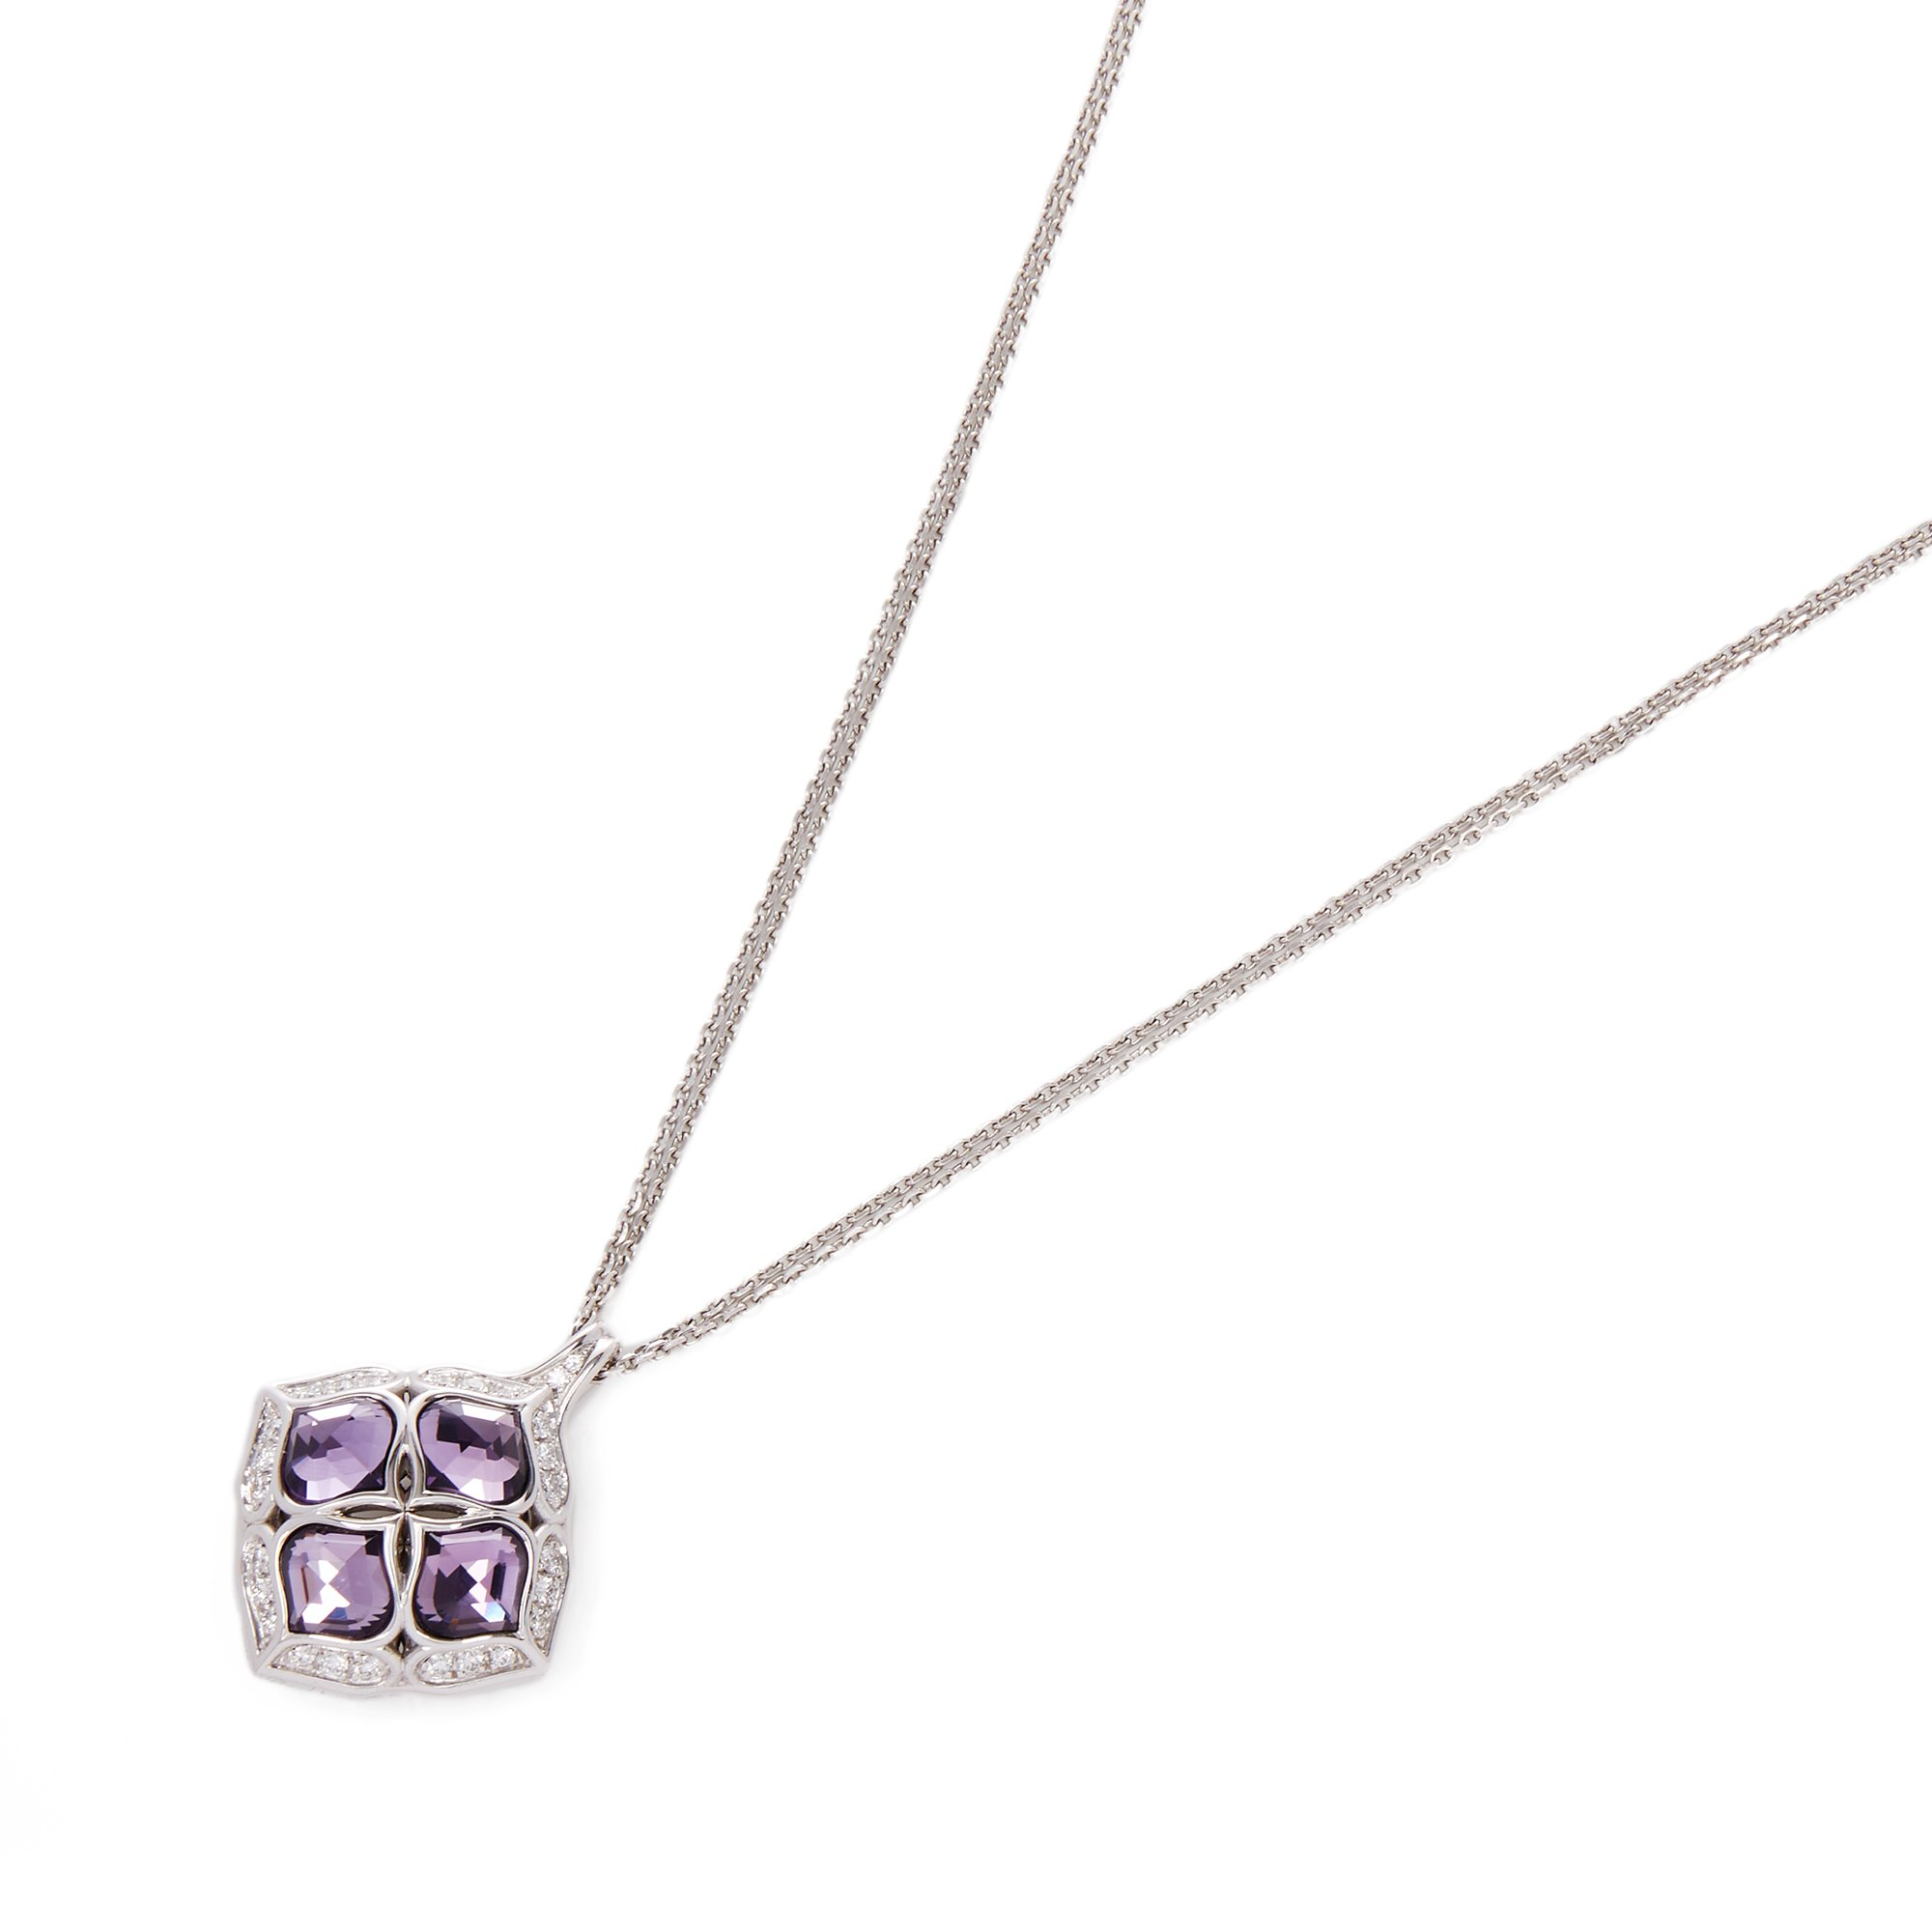 Chopard 18k White Gold Amethyst & Diamond Imperiale Pendant Necklace